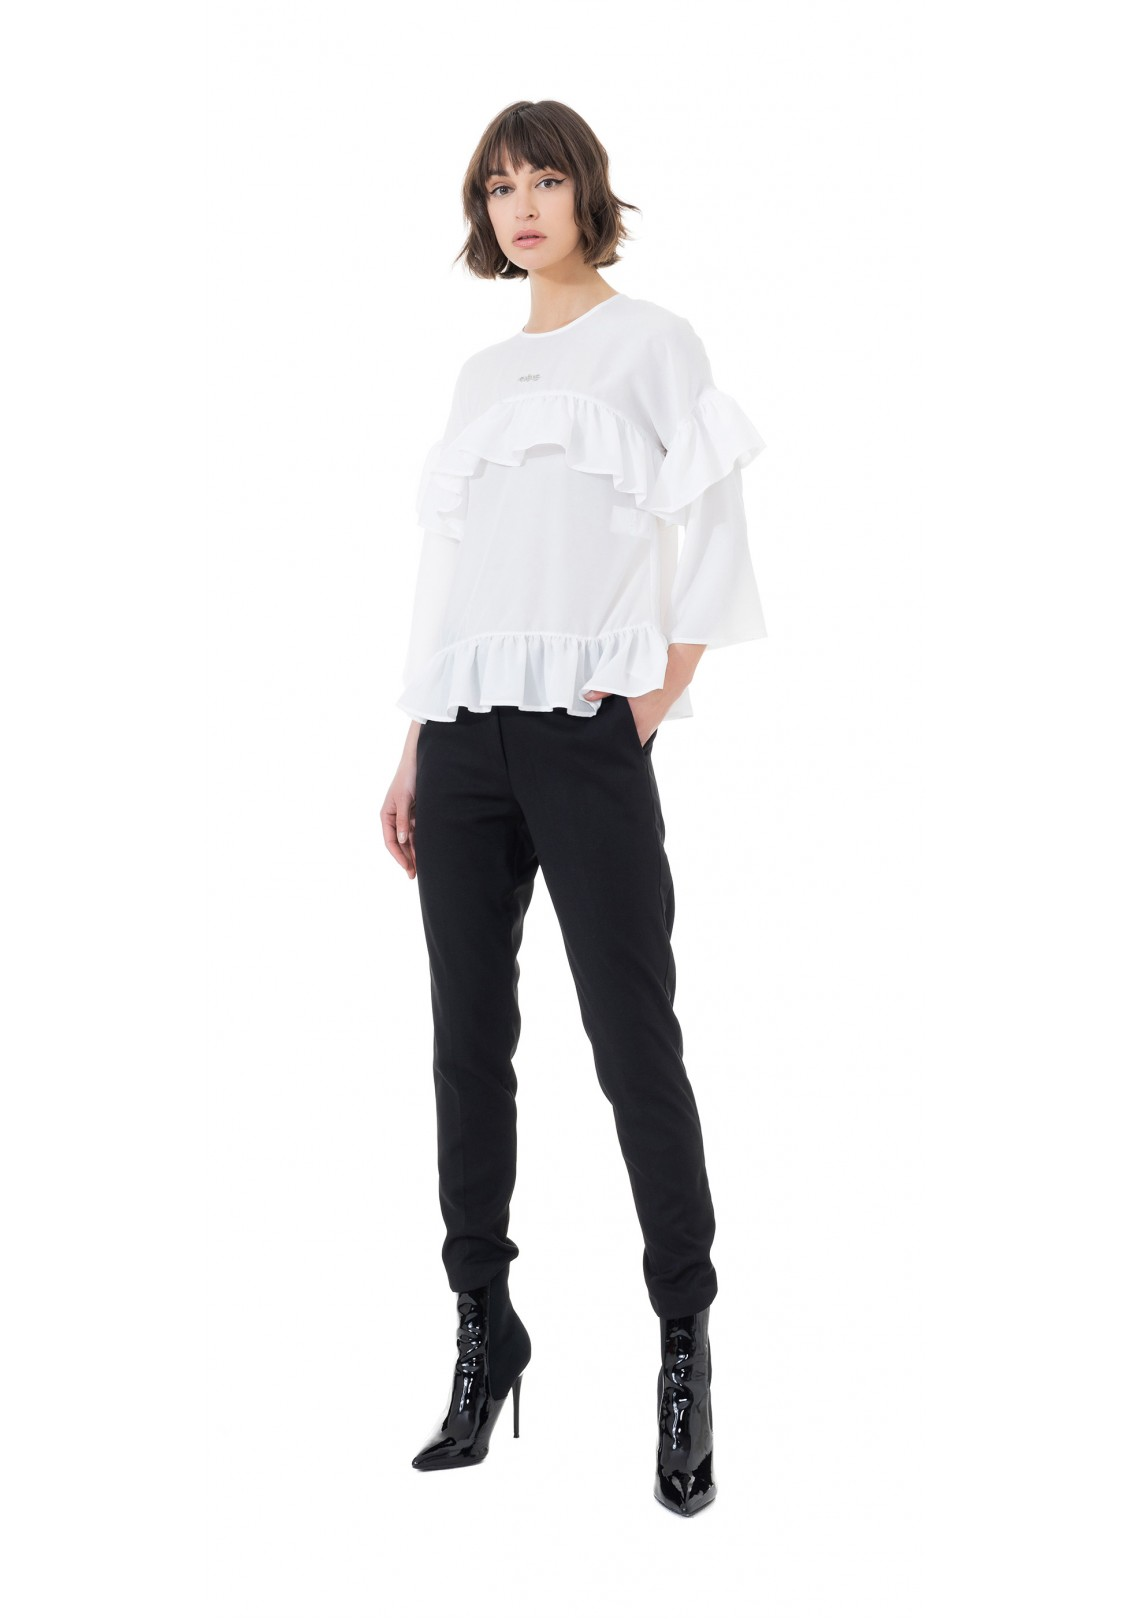 BLOUSE - GBD4772 - GAELLE PARIS